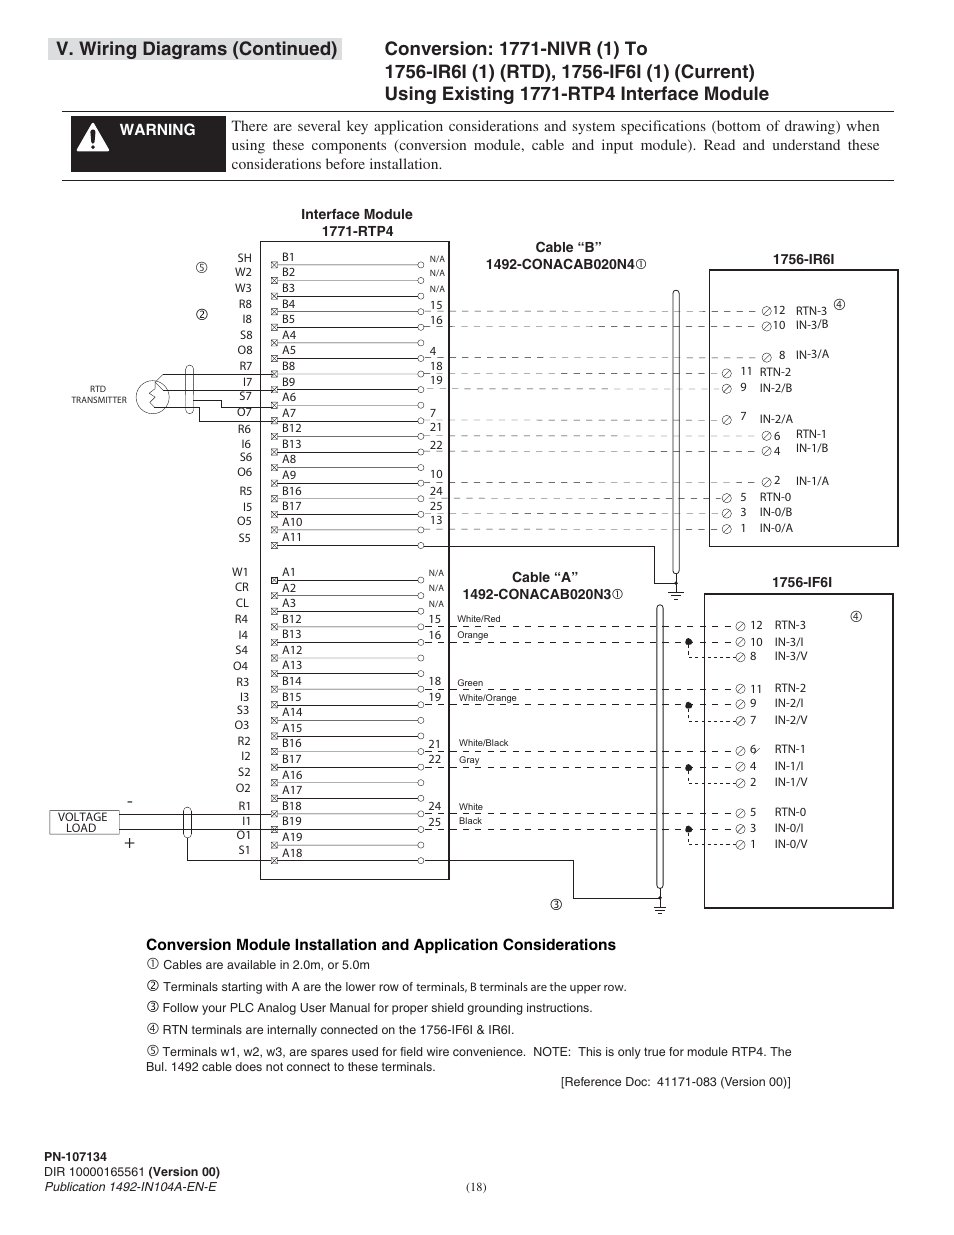 rockwell automation 1492 1771 n series i_o to 1756 controllogix i_o page18?resize\\\\\\\\\\\\\\\=665%2C861 1746 ow16 wiring diagram gmc fuse box diagrams, internet of 1746 ob16 wiring diagram at soozxer.org